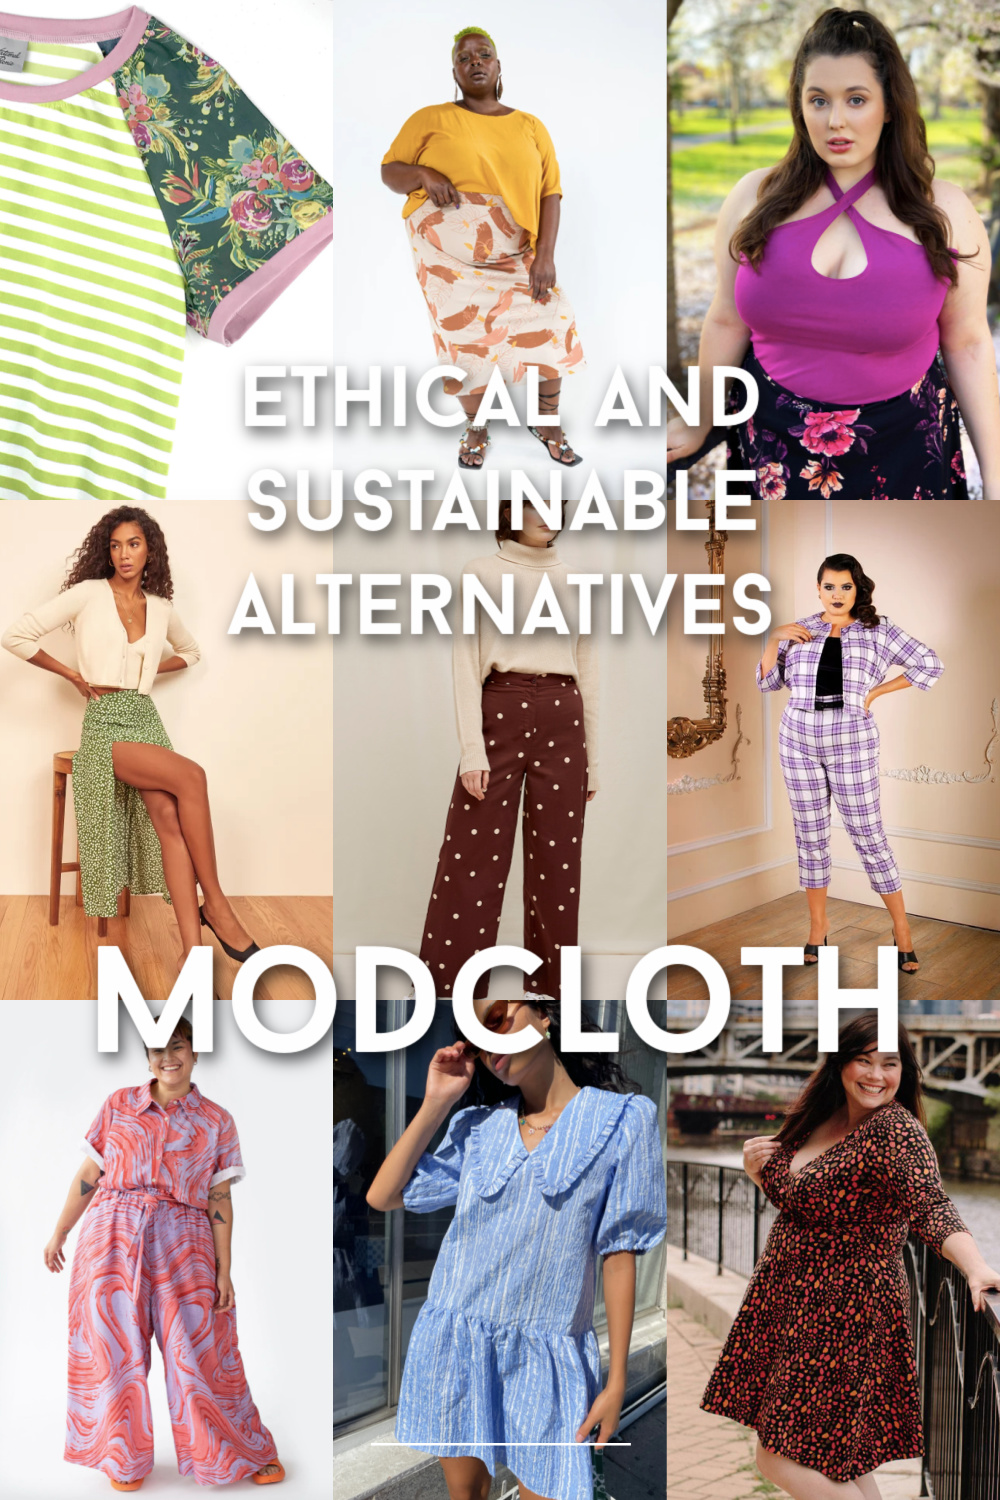 Ethical and sustainable alternatives to modcloth